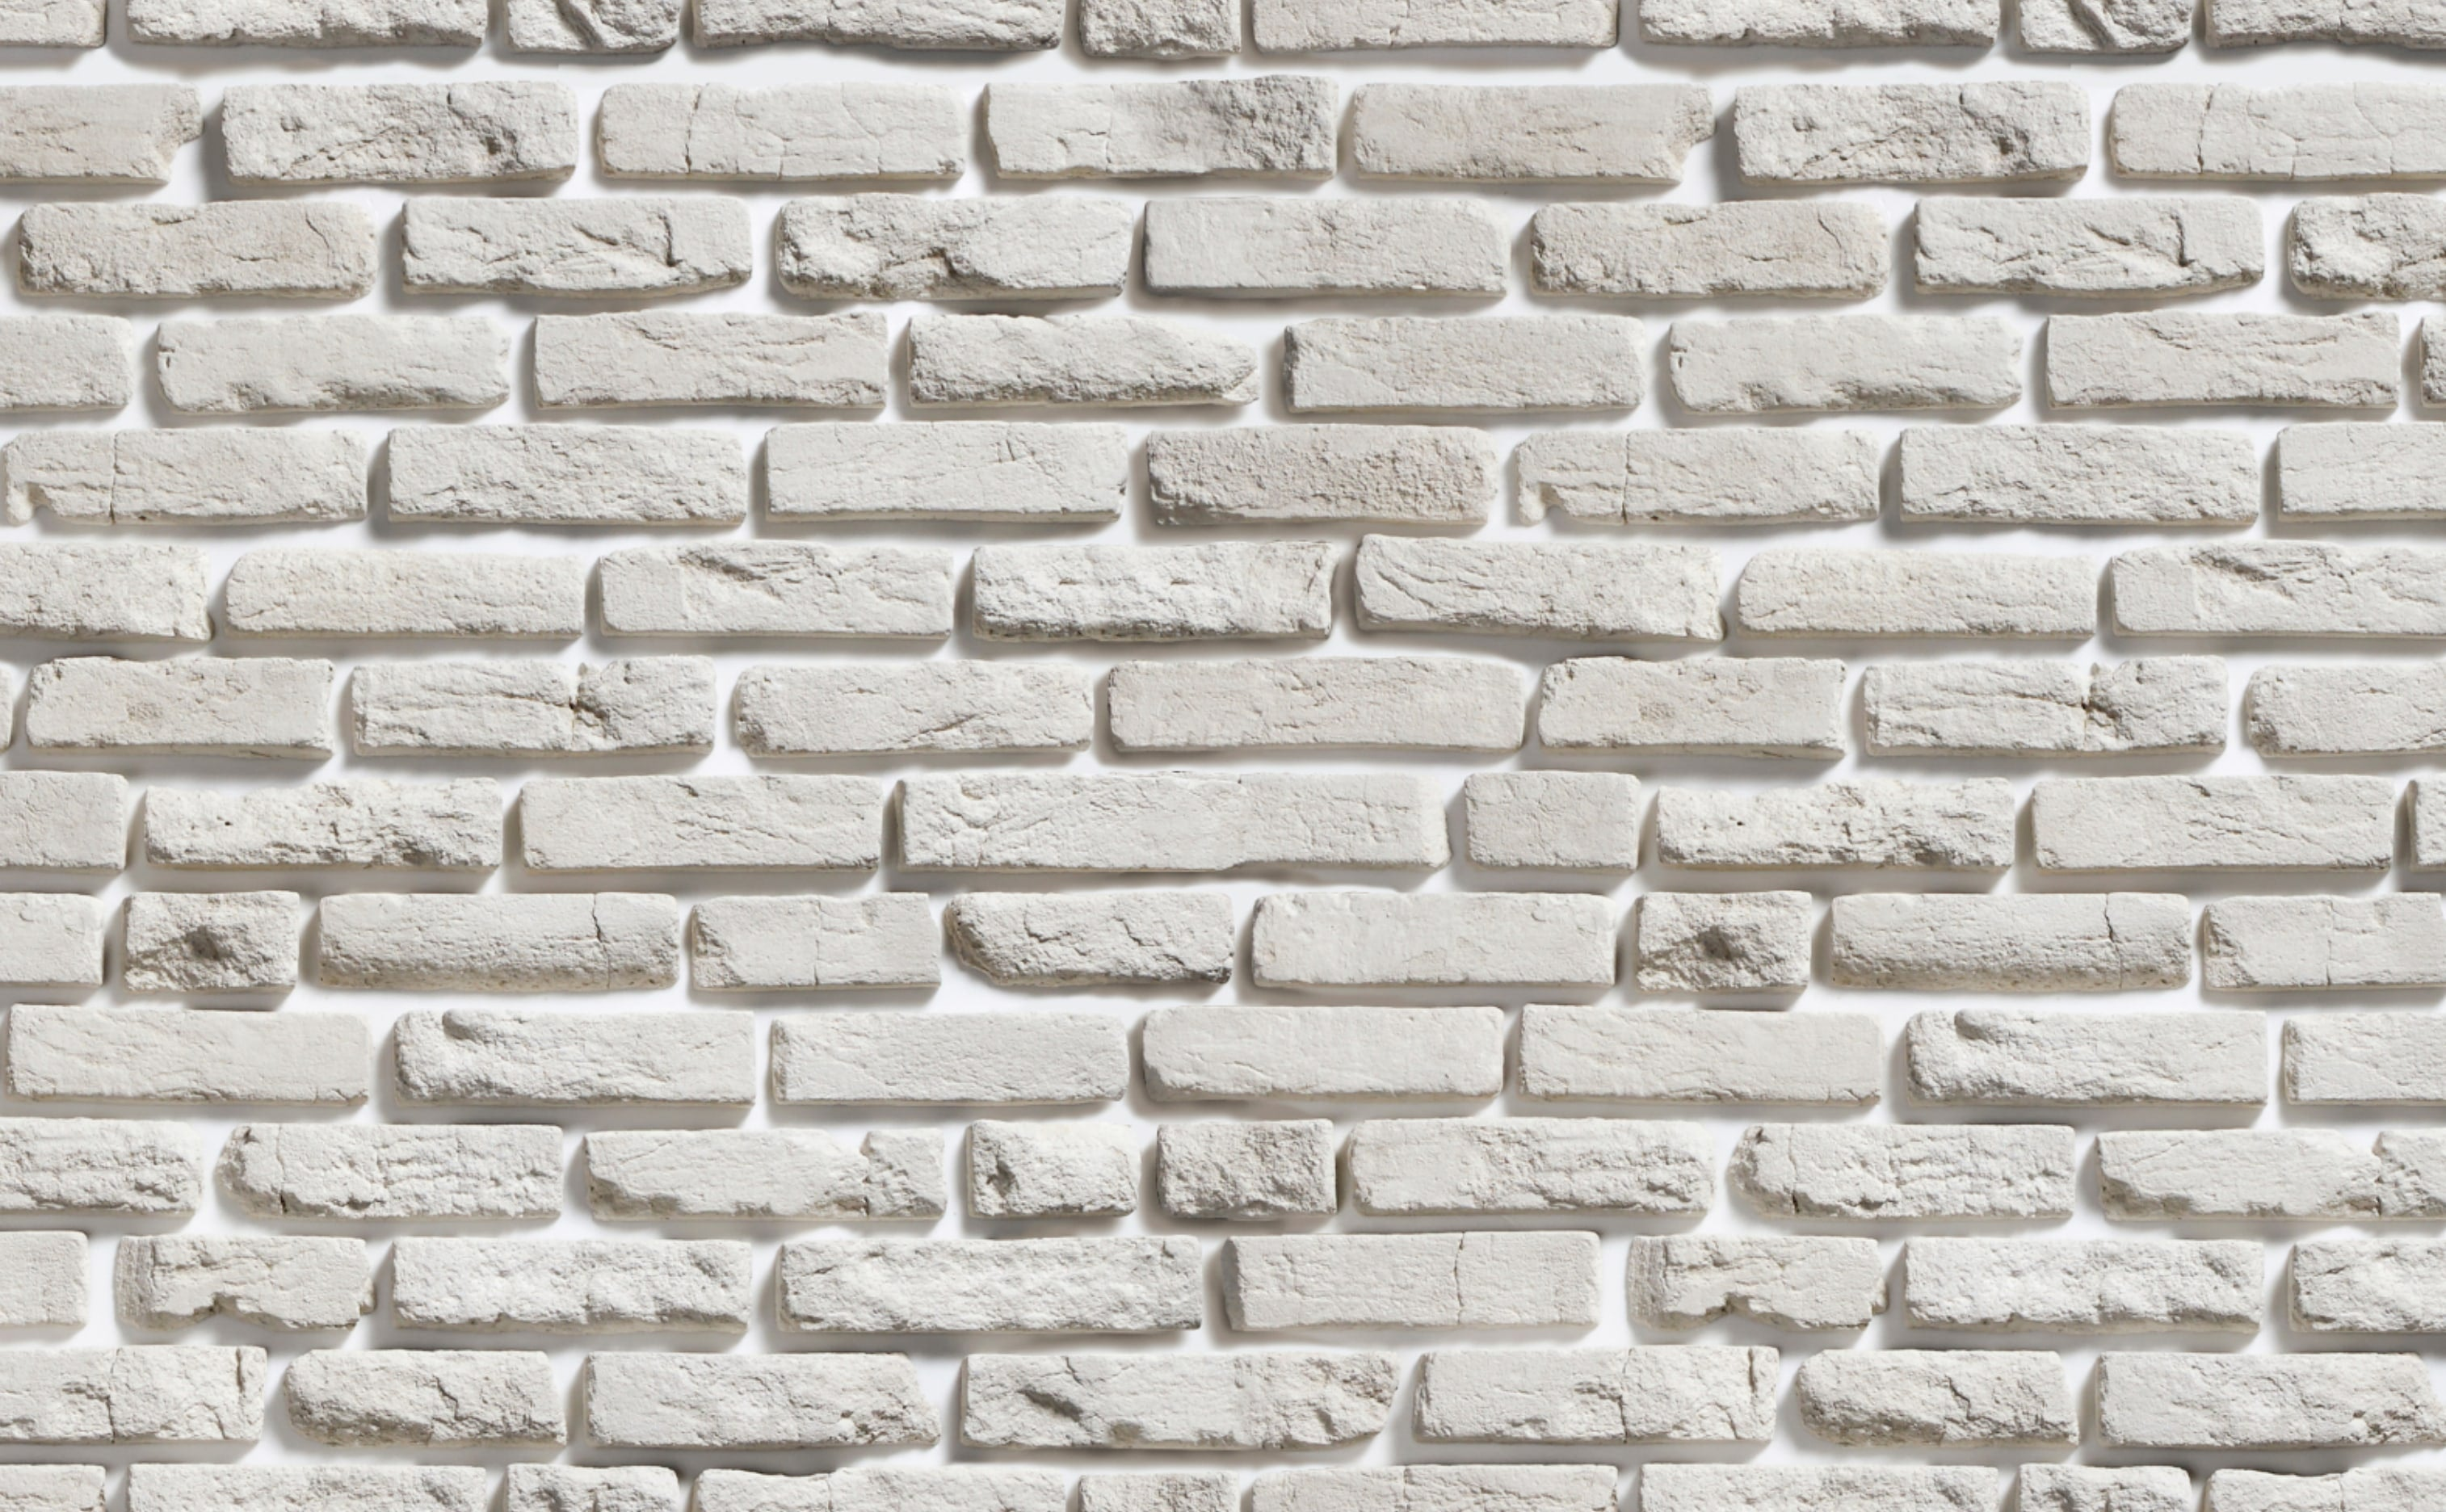 w0166 1s Aged Brick Wallpaper for Walls White Brick Repeating Pattern Sample 1